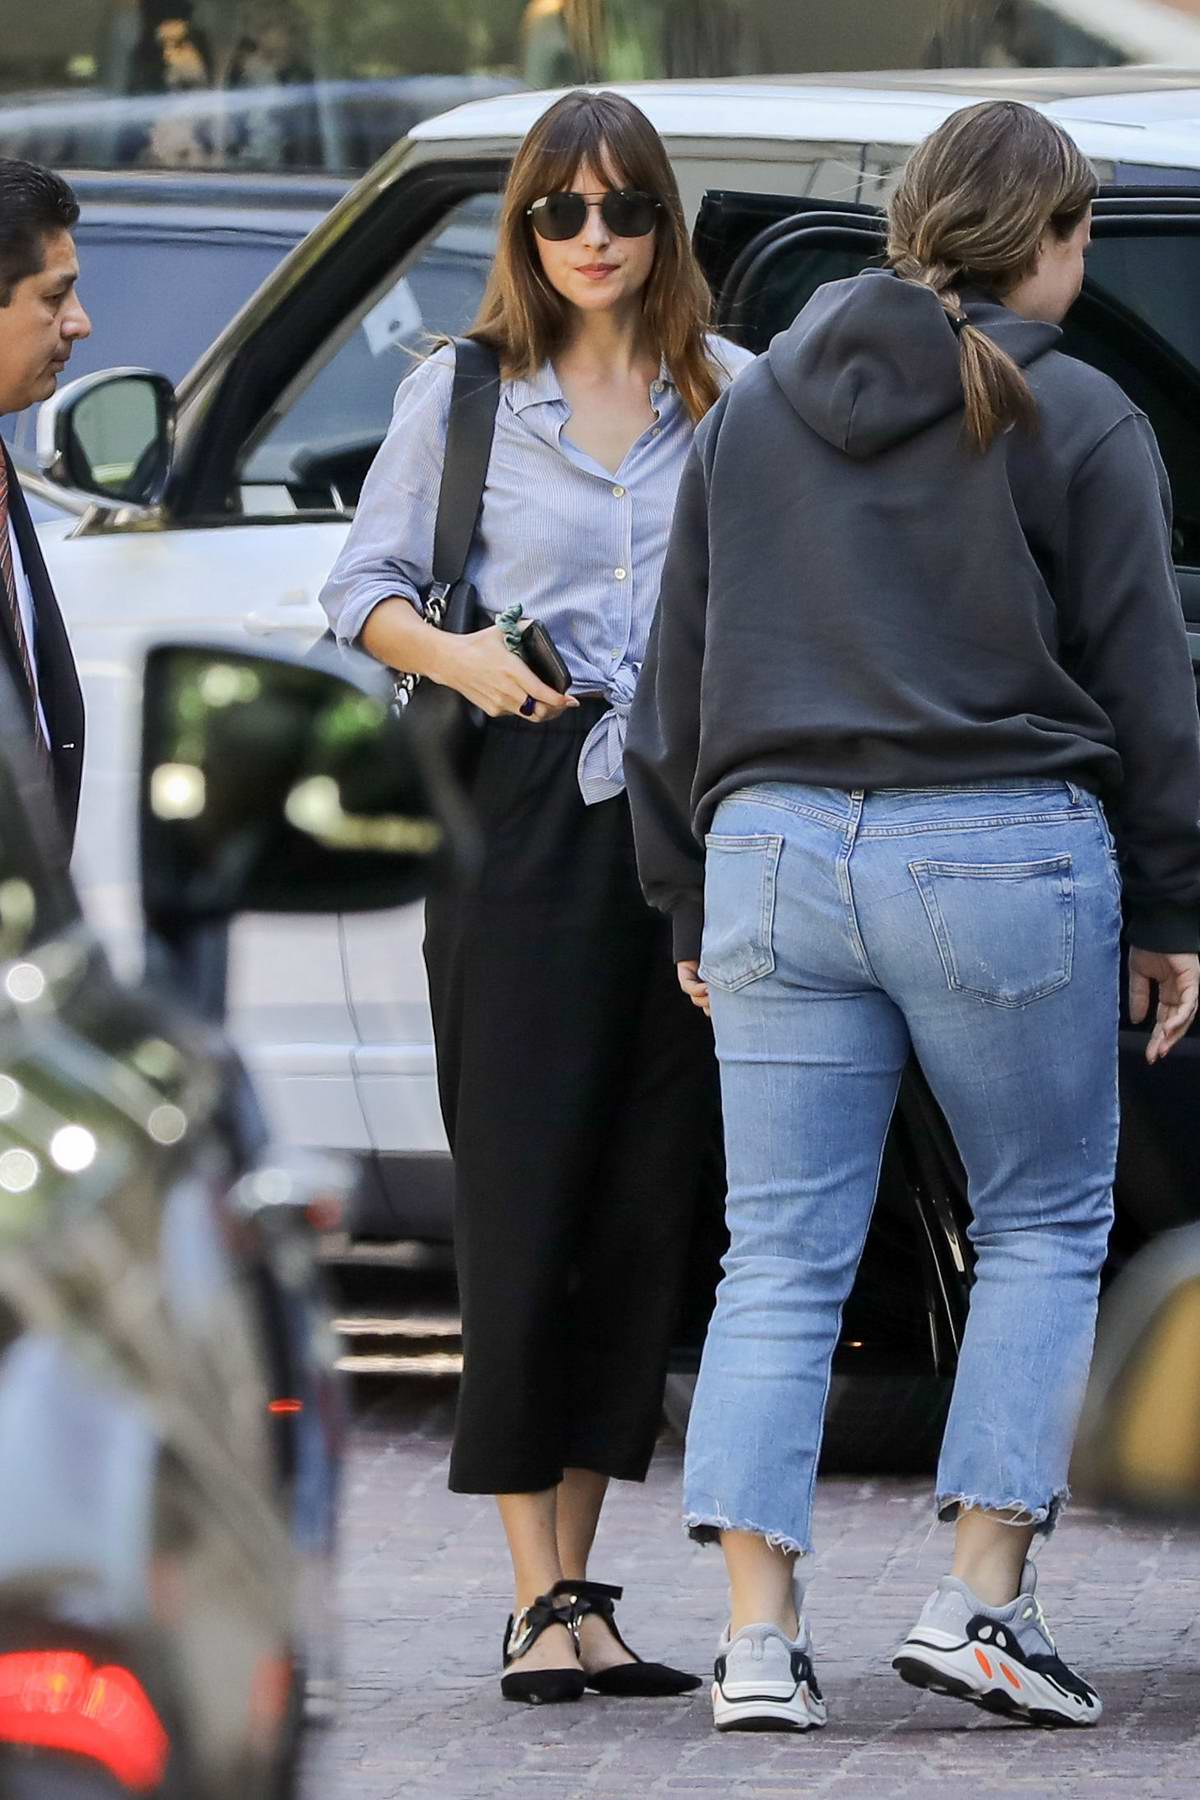 Dakota Johnson spotted while out with a friend in Beverly Hills, Los Angeles